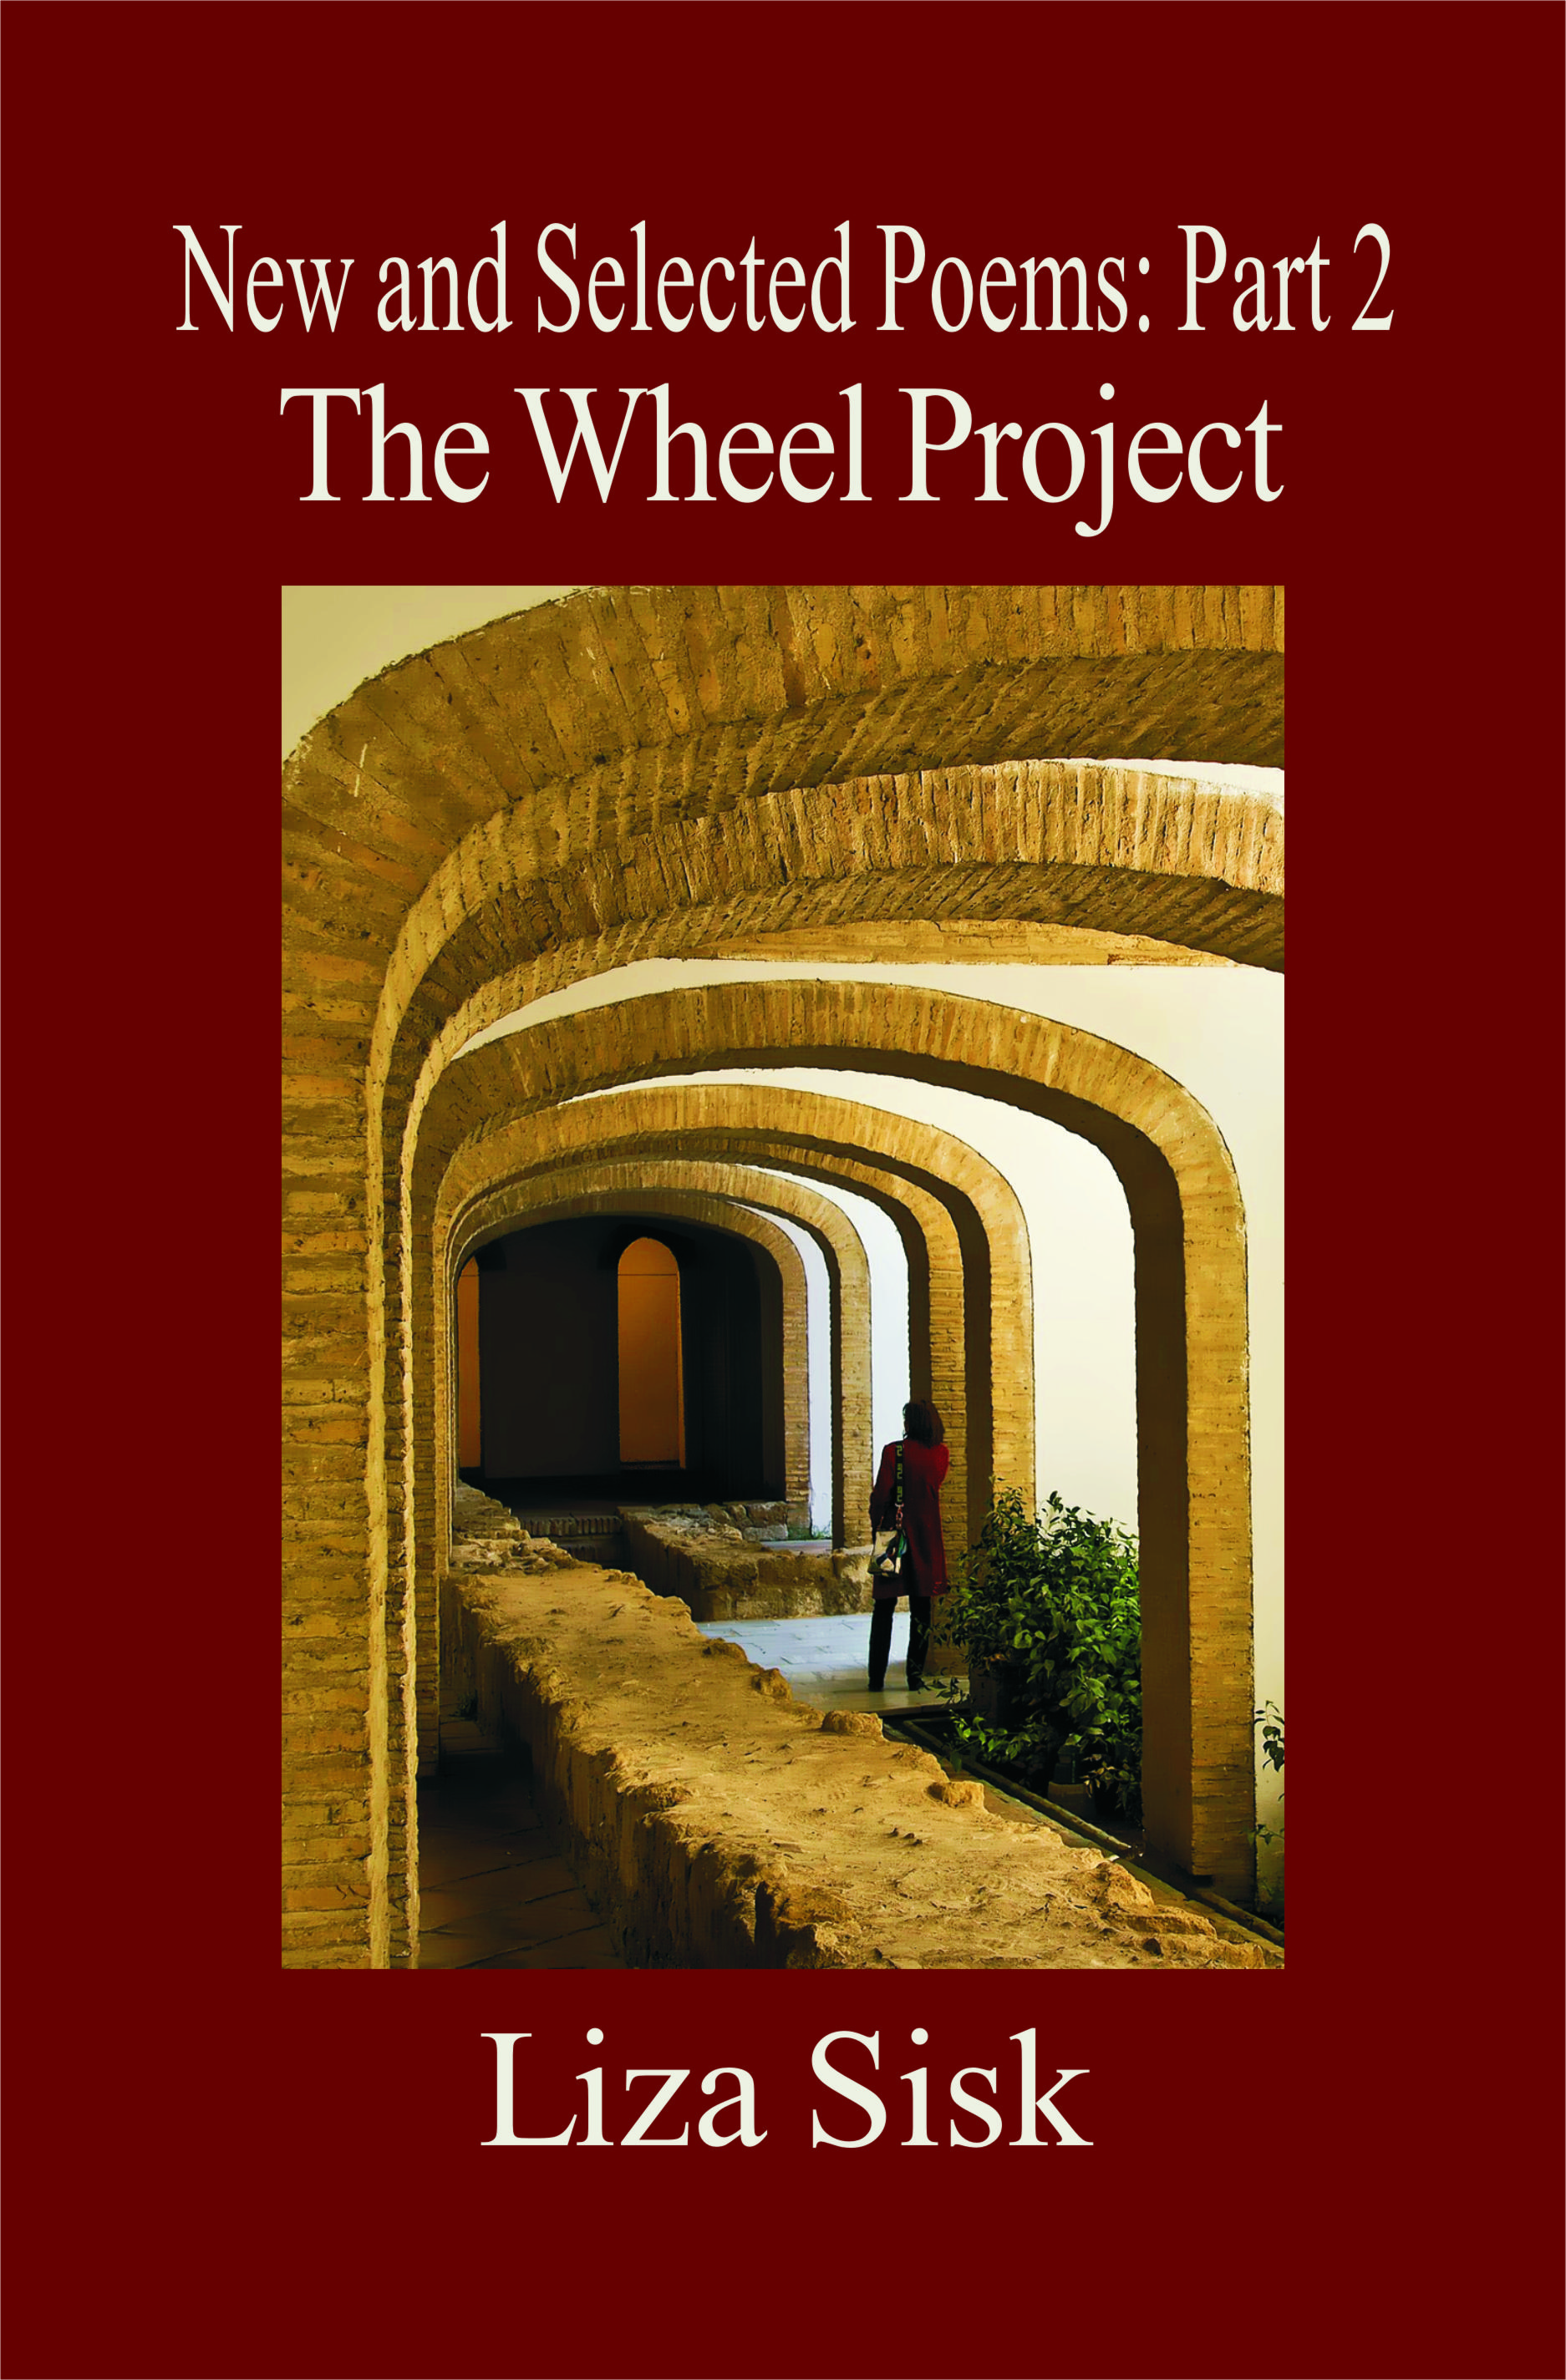 The Wheel Project